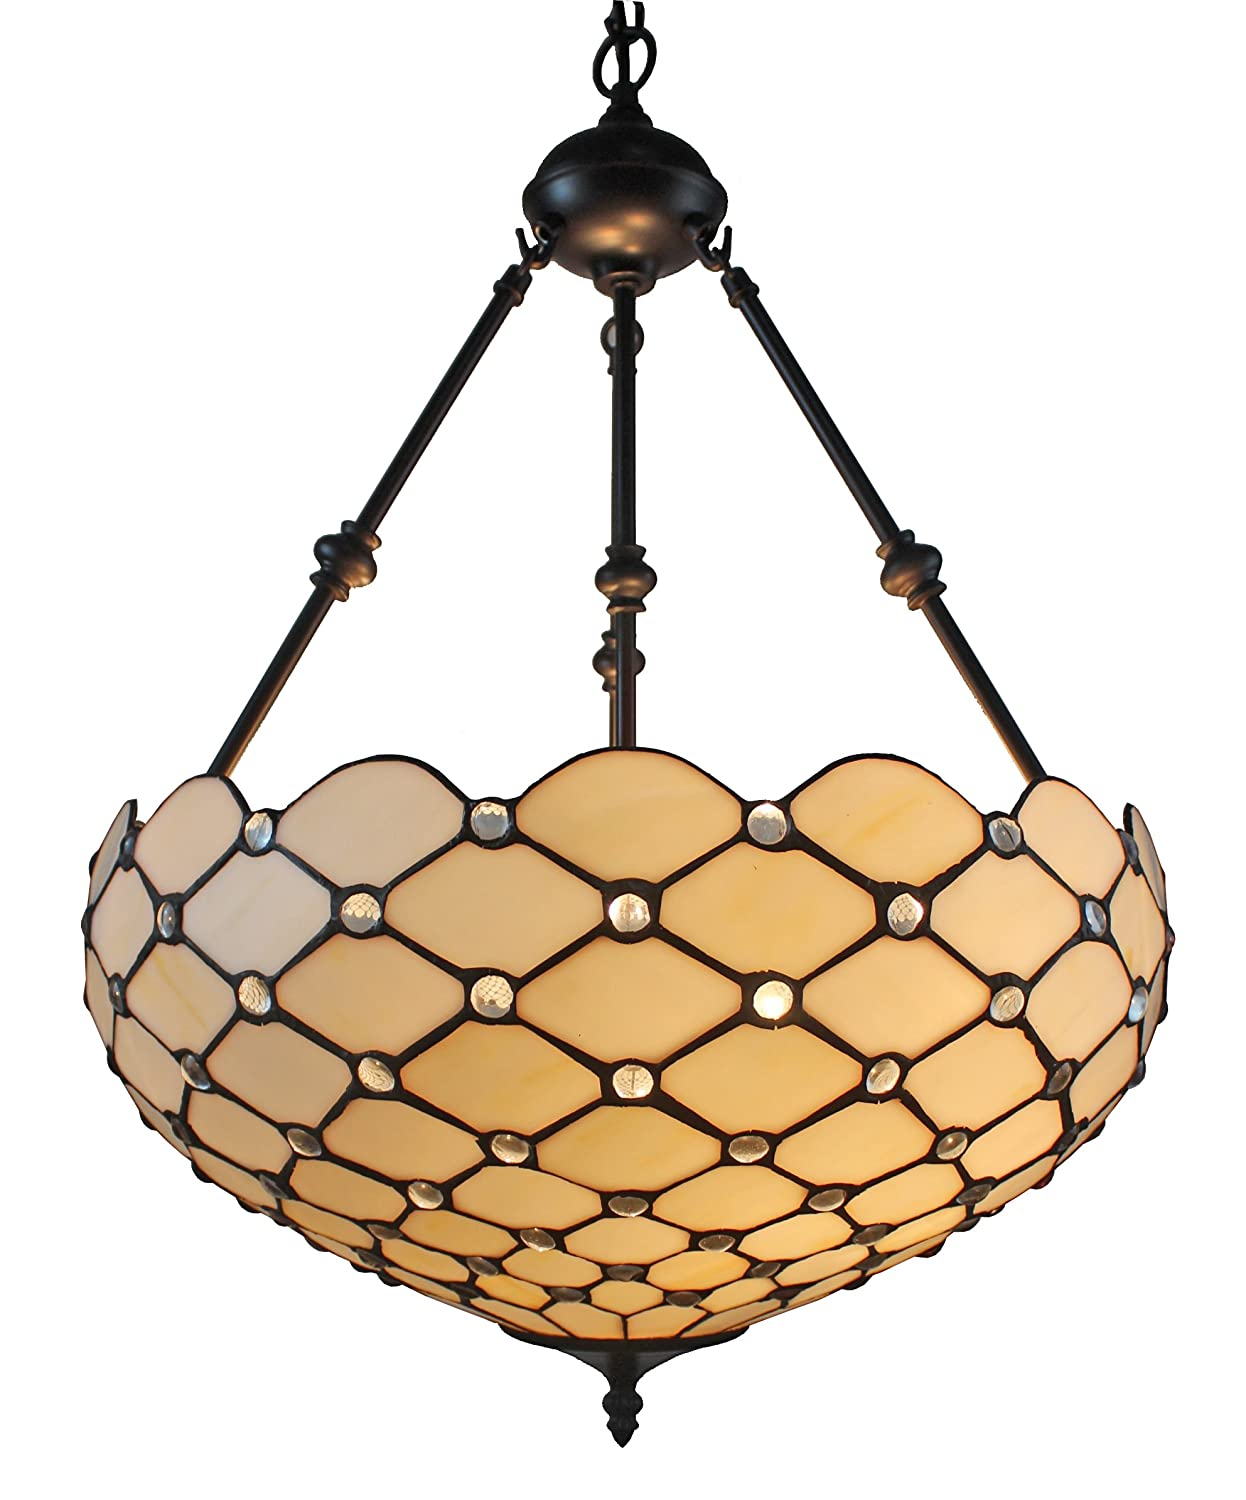 style uplighter art ceiling tiffany fargo pendant deco image light